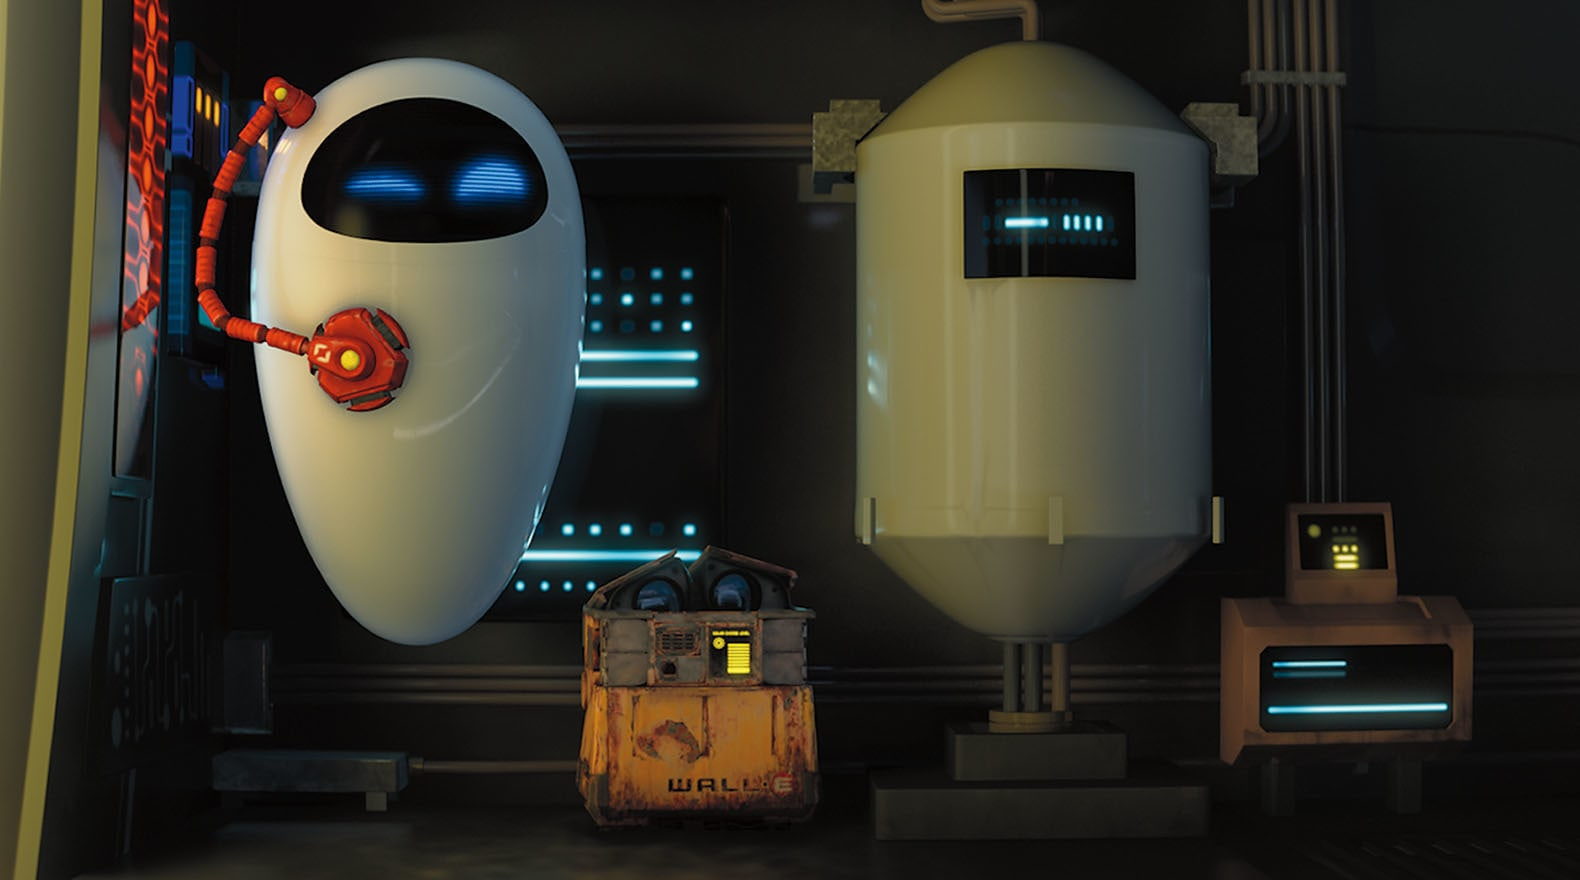 """Wall-E and EVE with a group of robots from the movie """"Wall-E"""""""